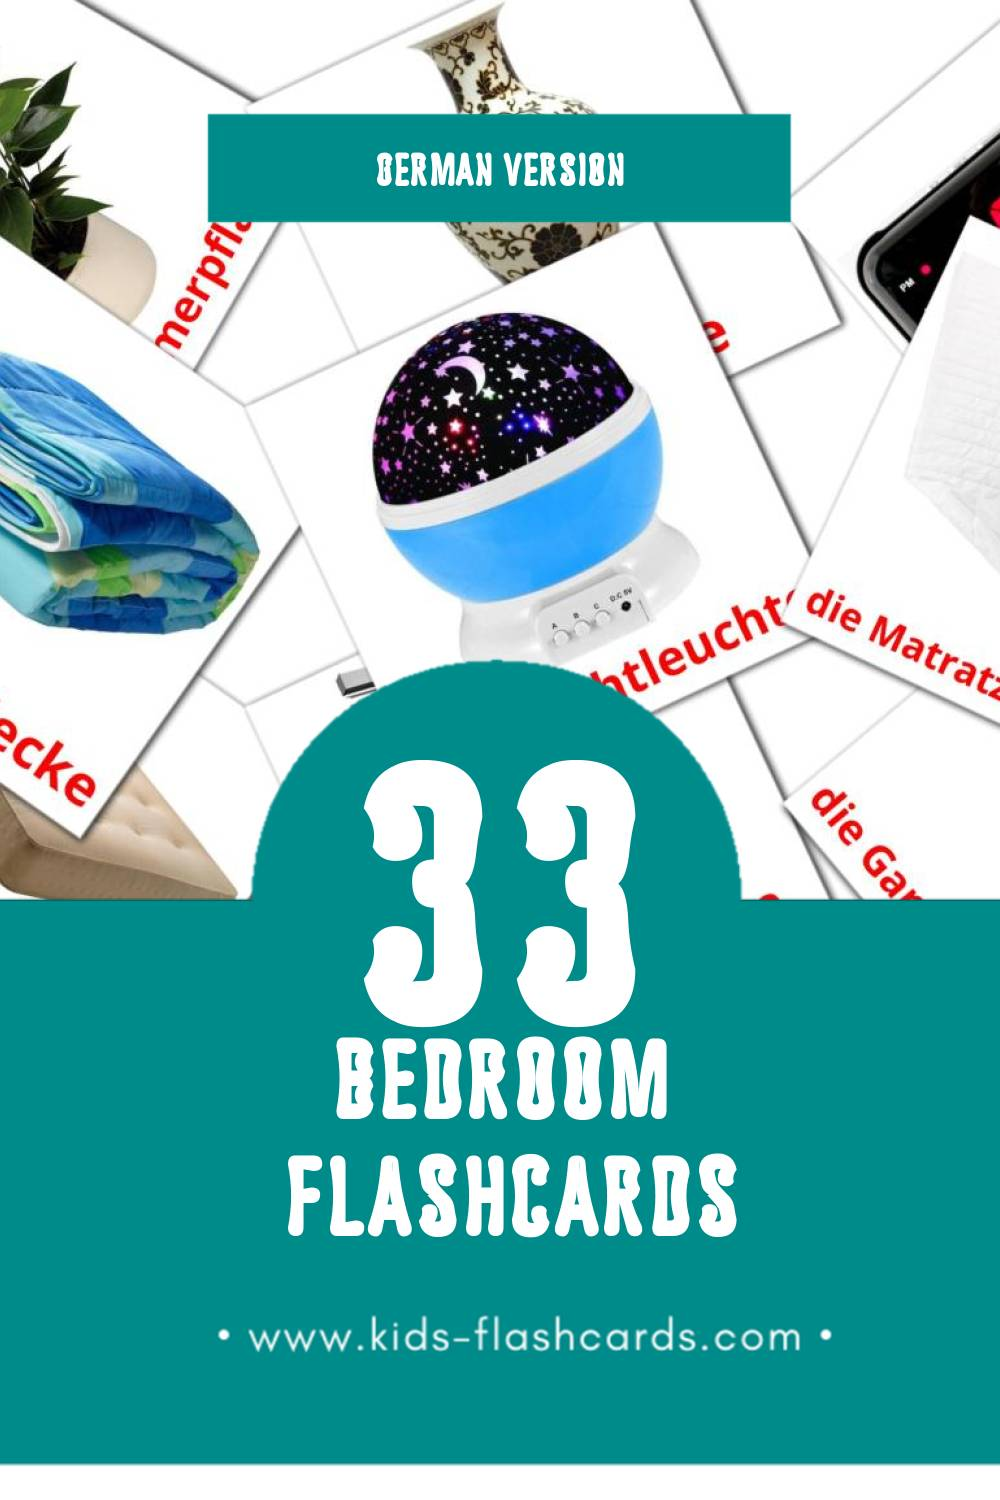 Visual das Schlafzimmer Flashcards for Toddlers (33 cards in German)